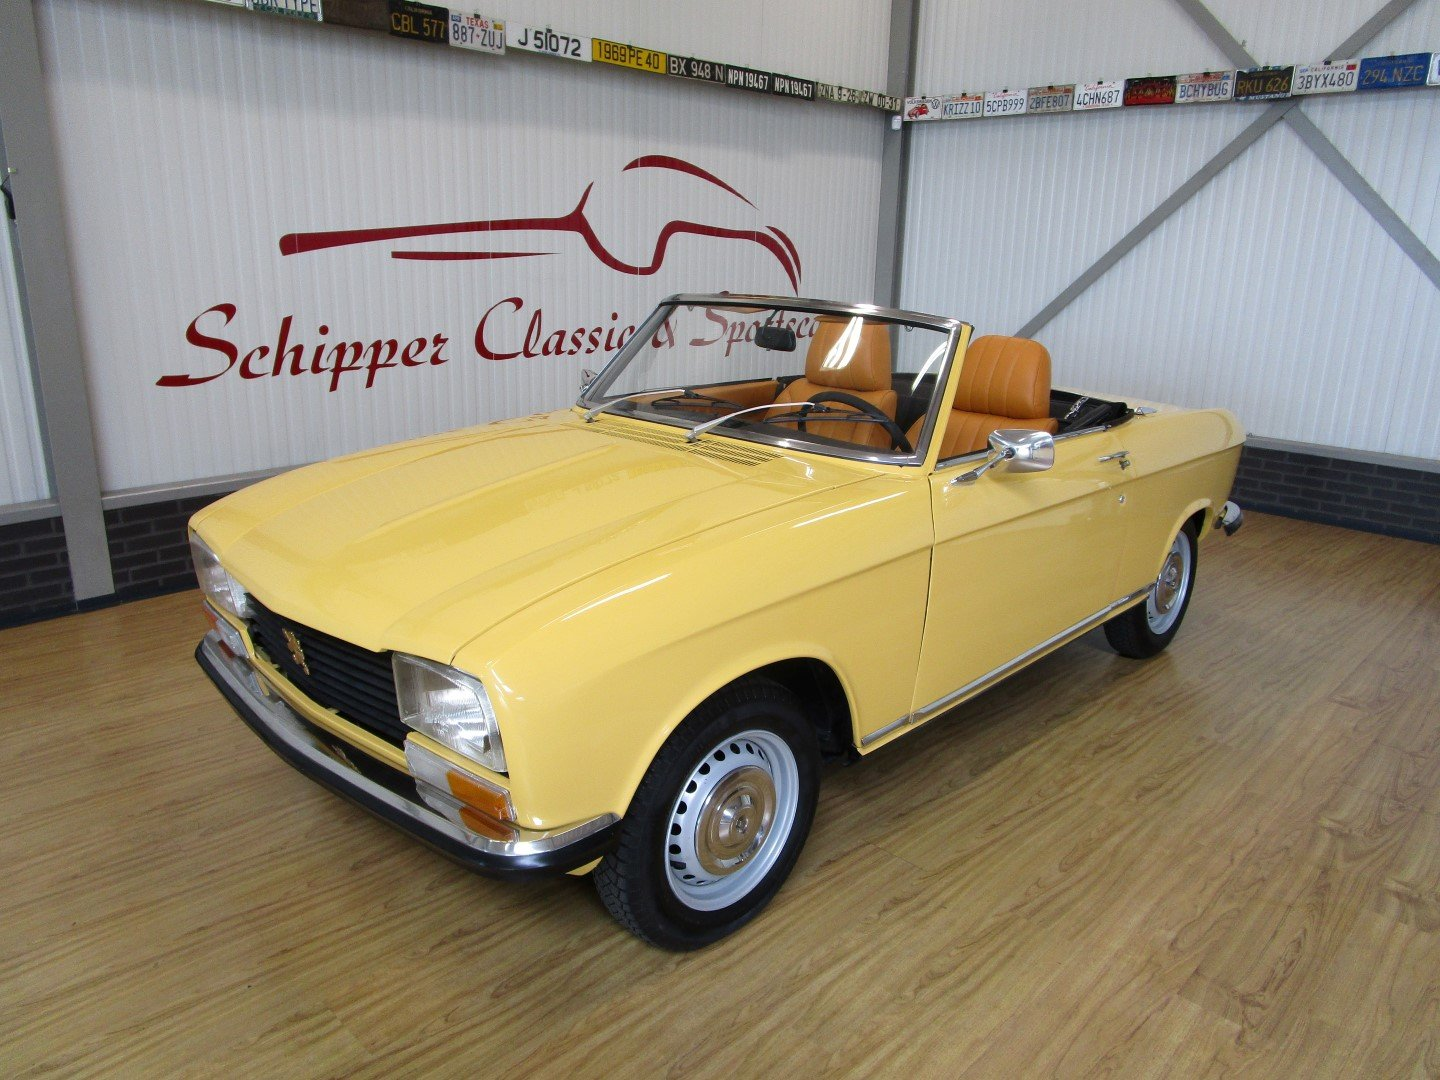 1972 Peugeot 304 S Cabrio For Sale (picture 1 of 6)